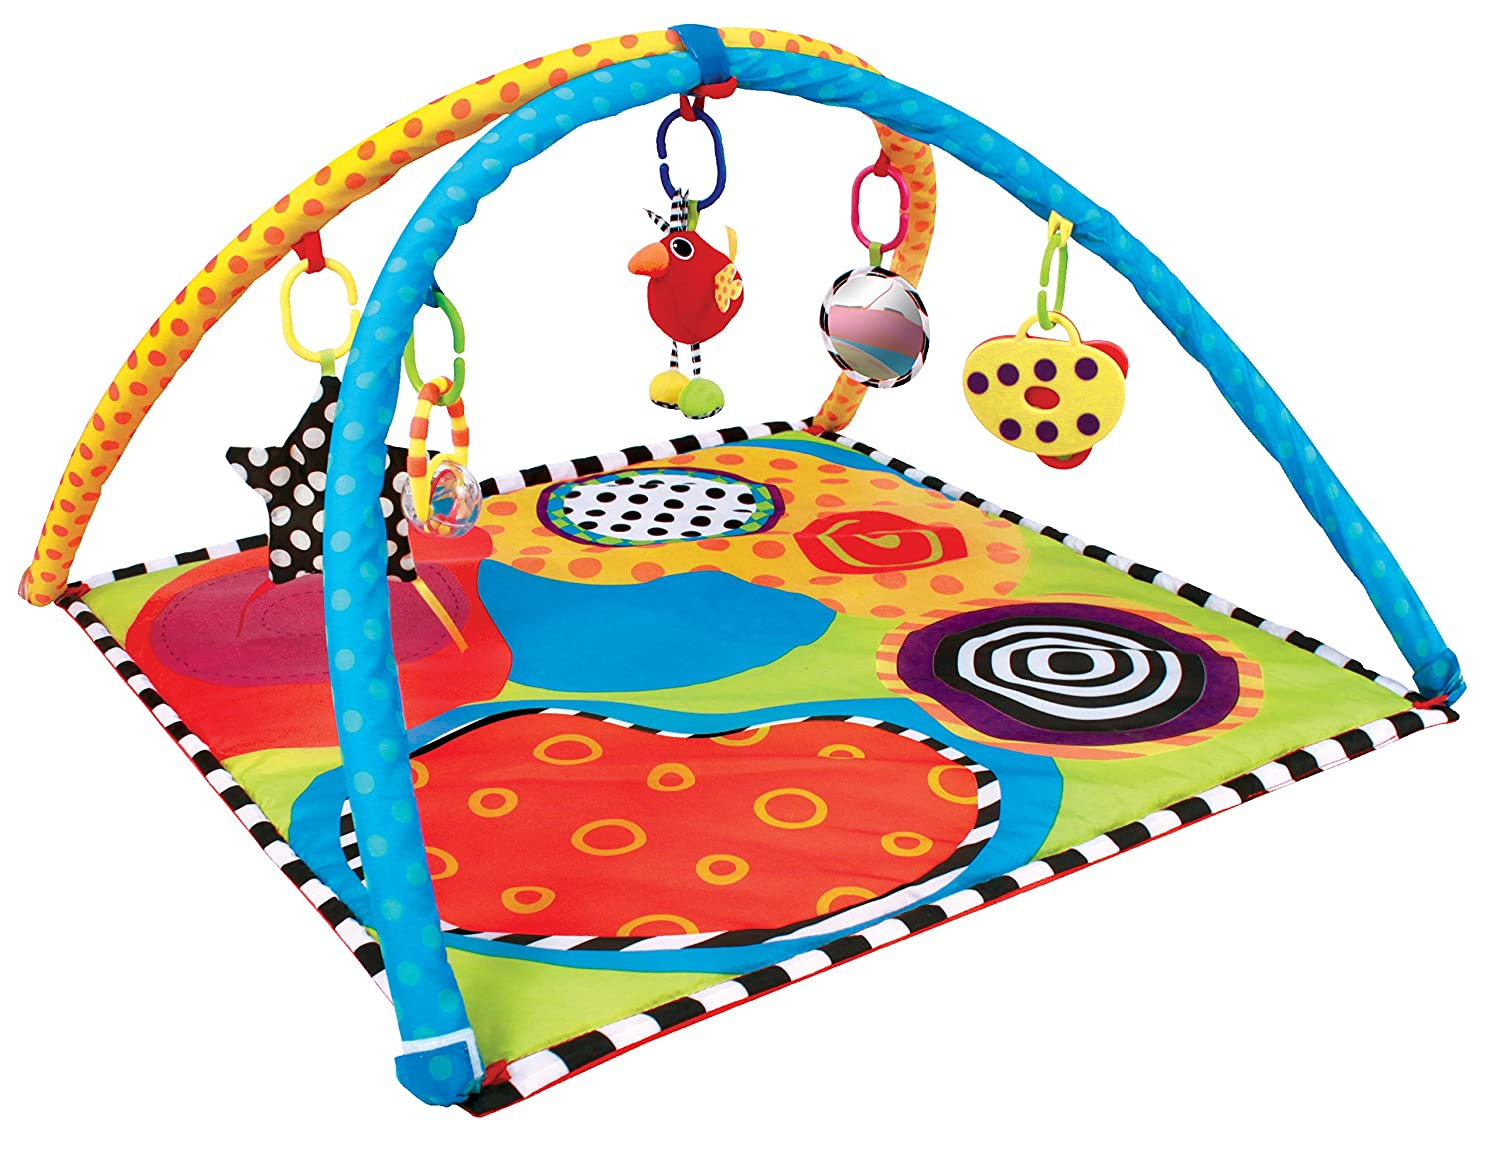 amazoncom  sassy developmental playmat  baby -